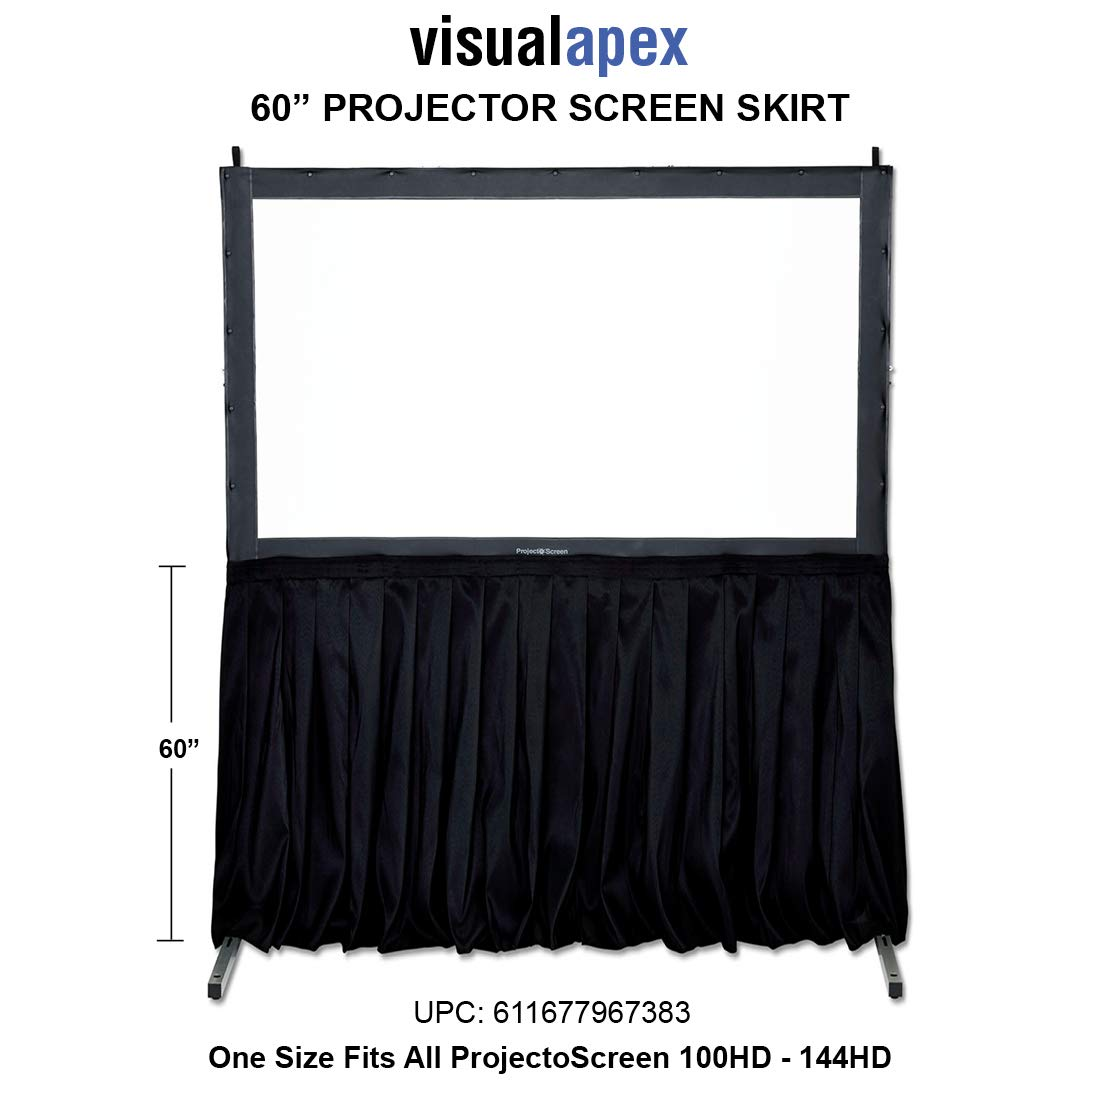 Visual Apex Projector Screen Black Presentation Screen Skirt Kit (EL) 60'' high - Extended Length Presentation Screen Skirt Kit (Screen not Included) for use with Screen and Extension Legs.